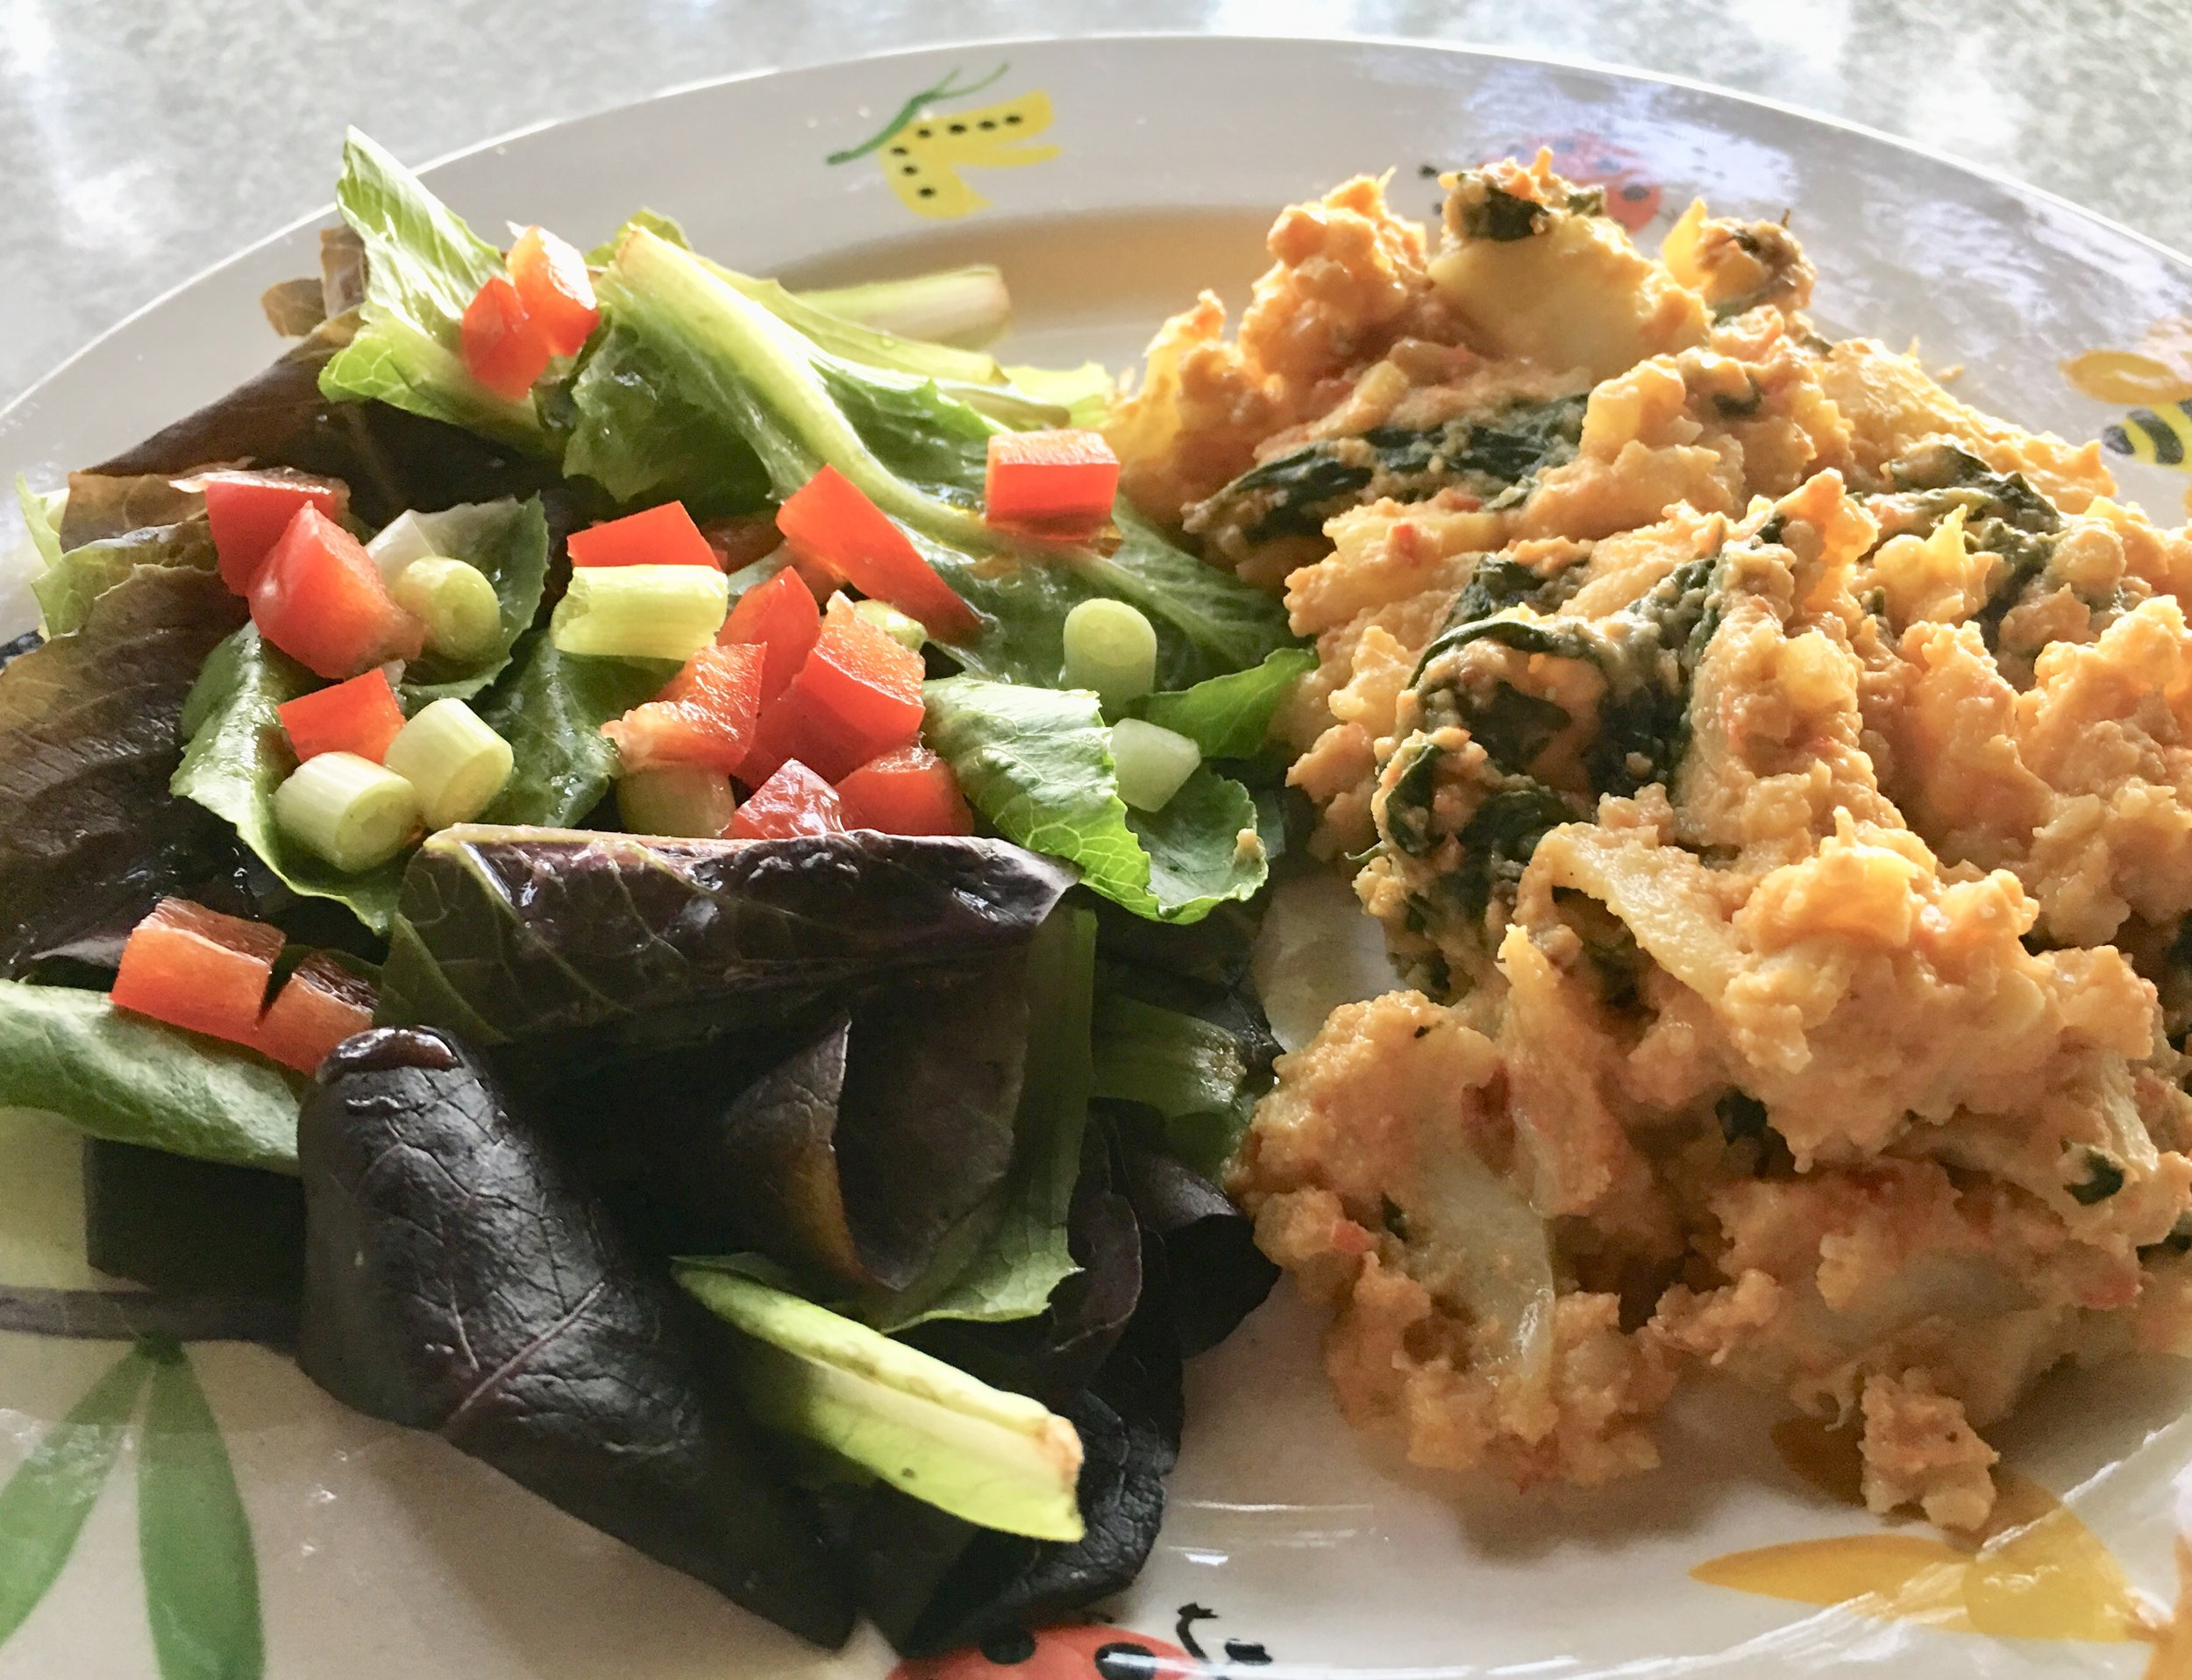 Vegan Cauliflower Mac N Cheese Casserole w Mixed Greens.JPG